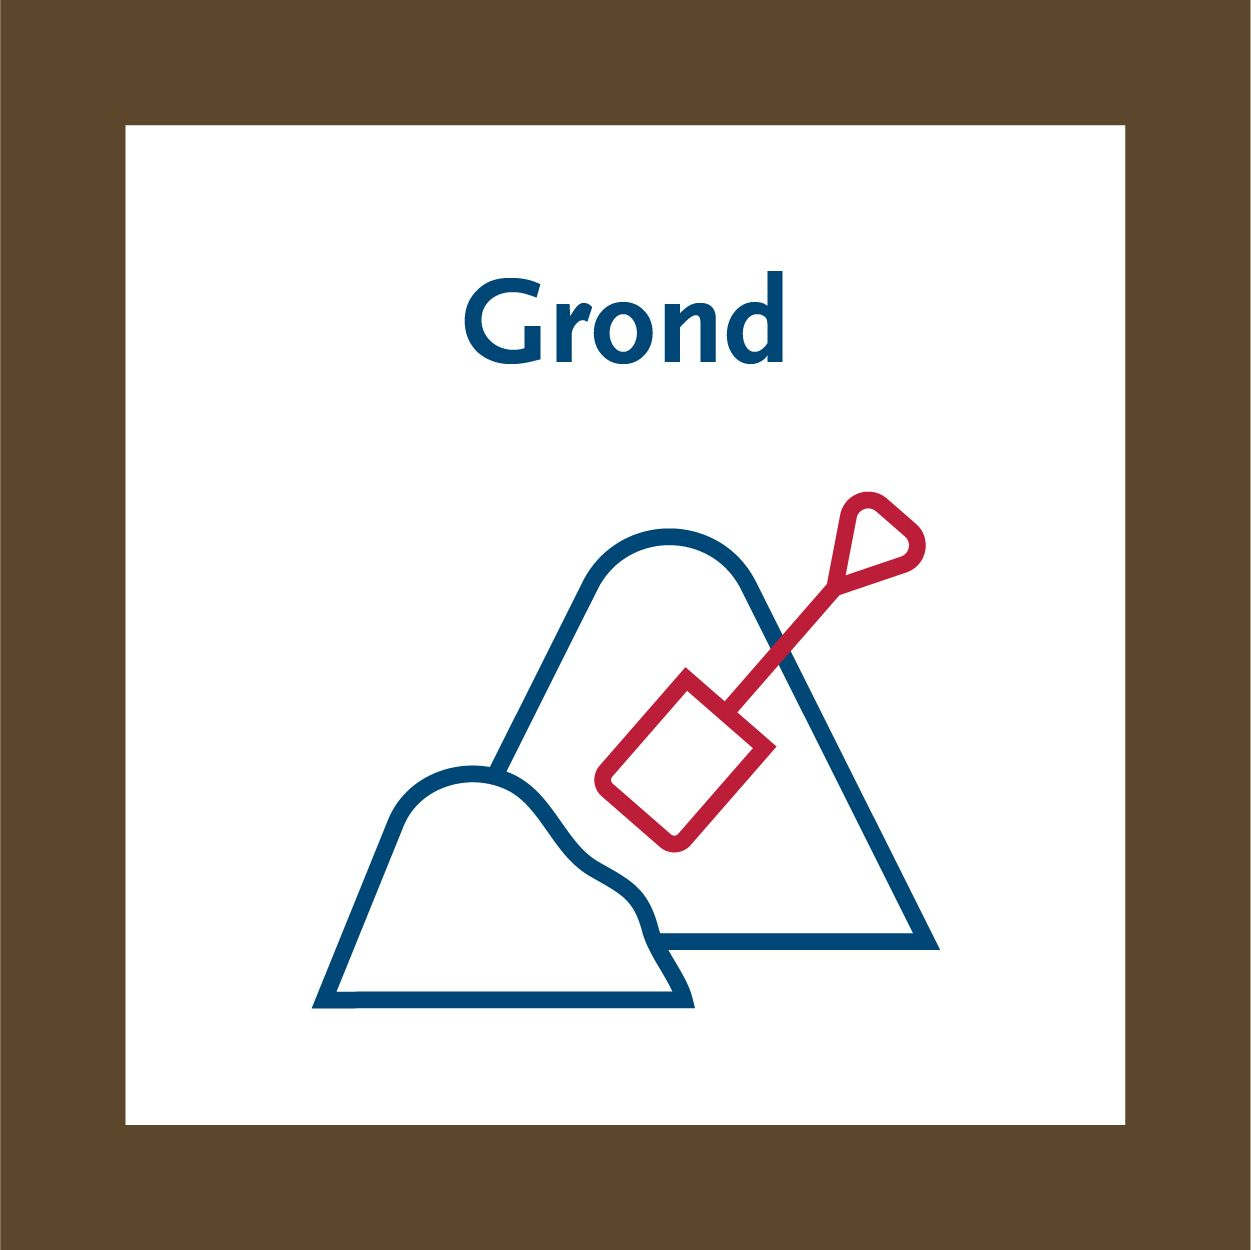 Grond